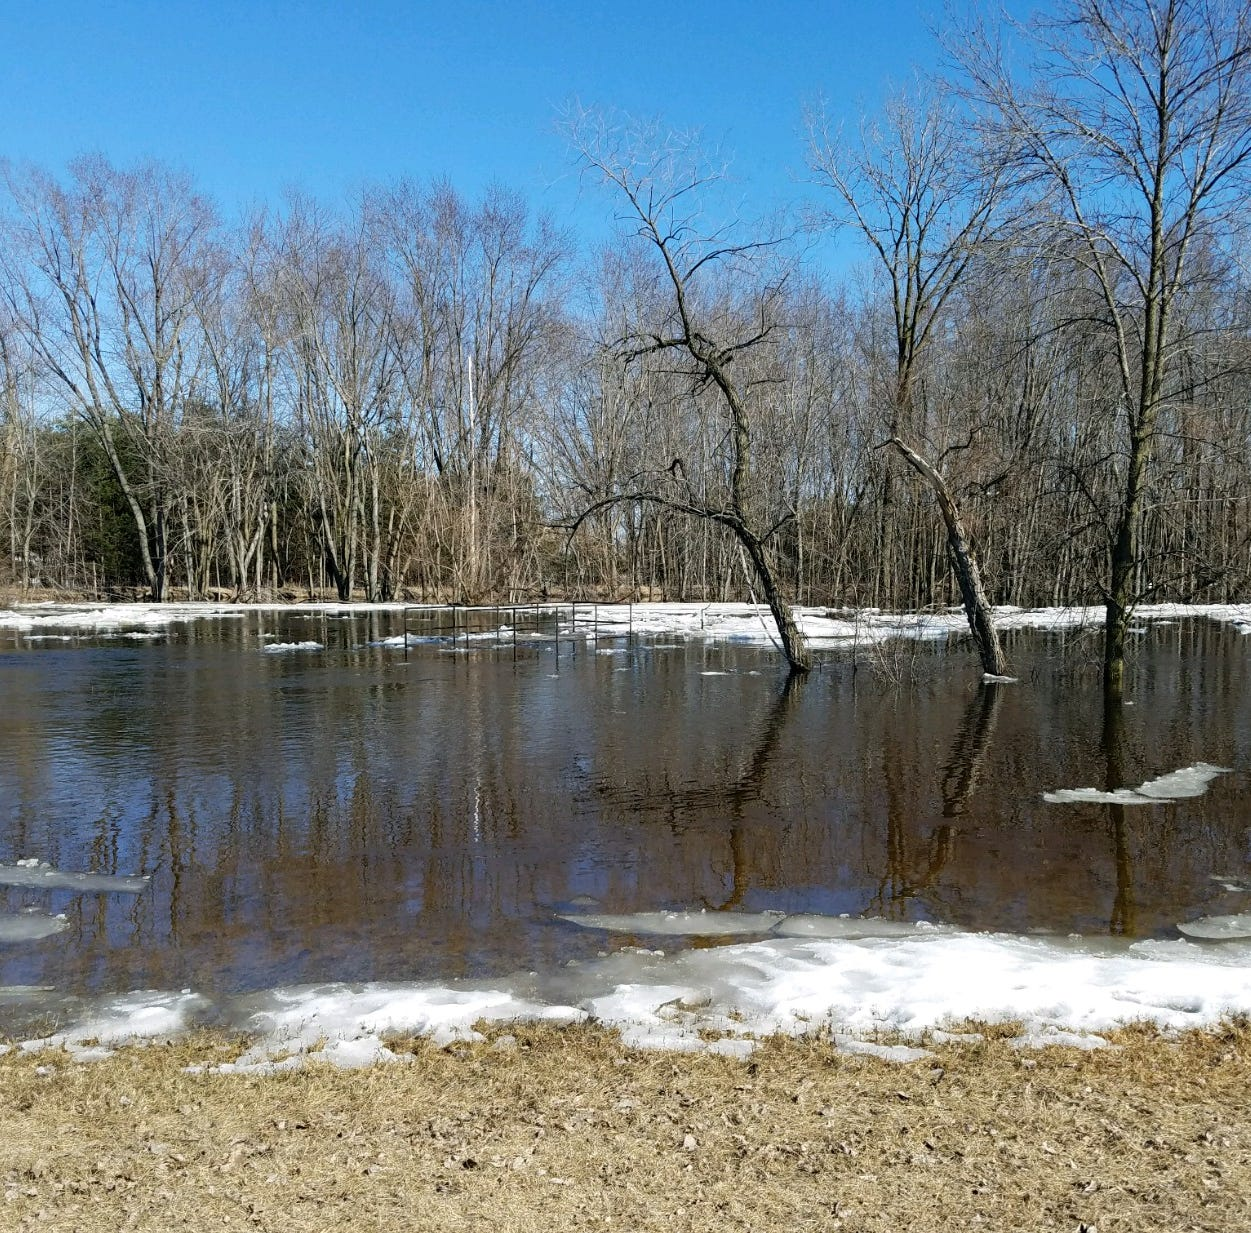 Flooding concerns move to areas where spring ice break up hasn't happened yet